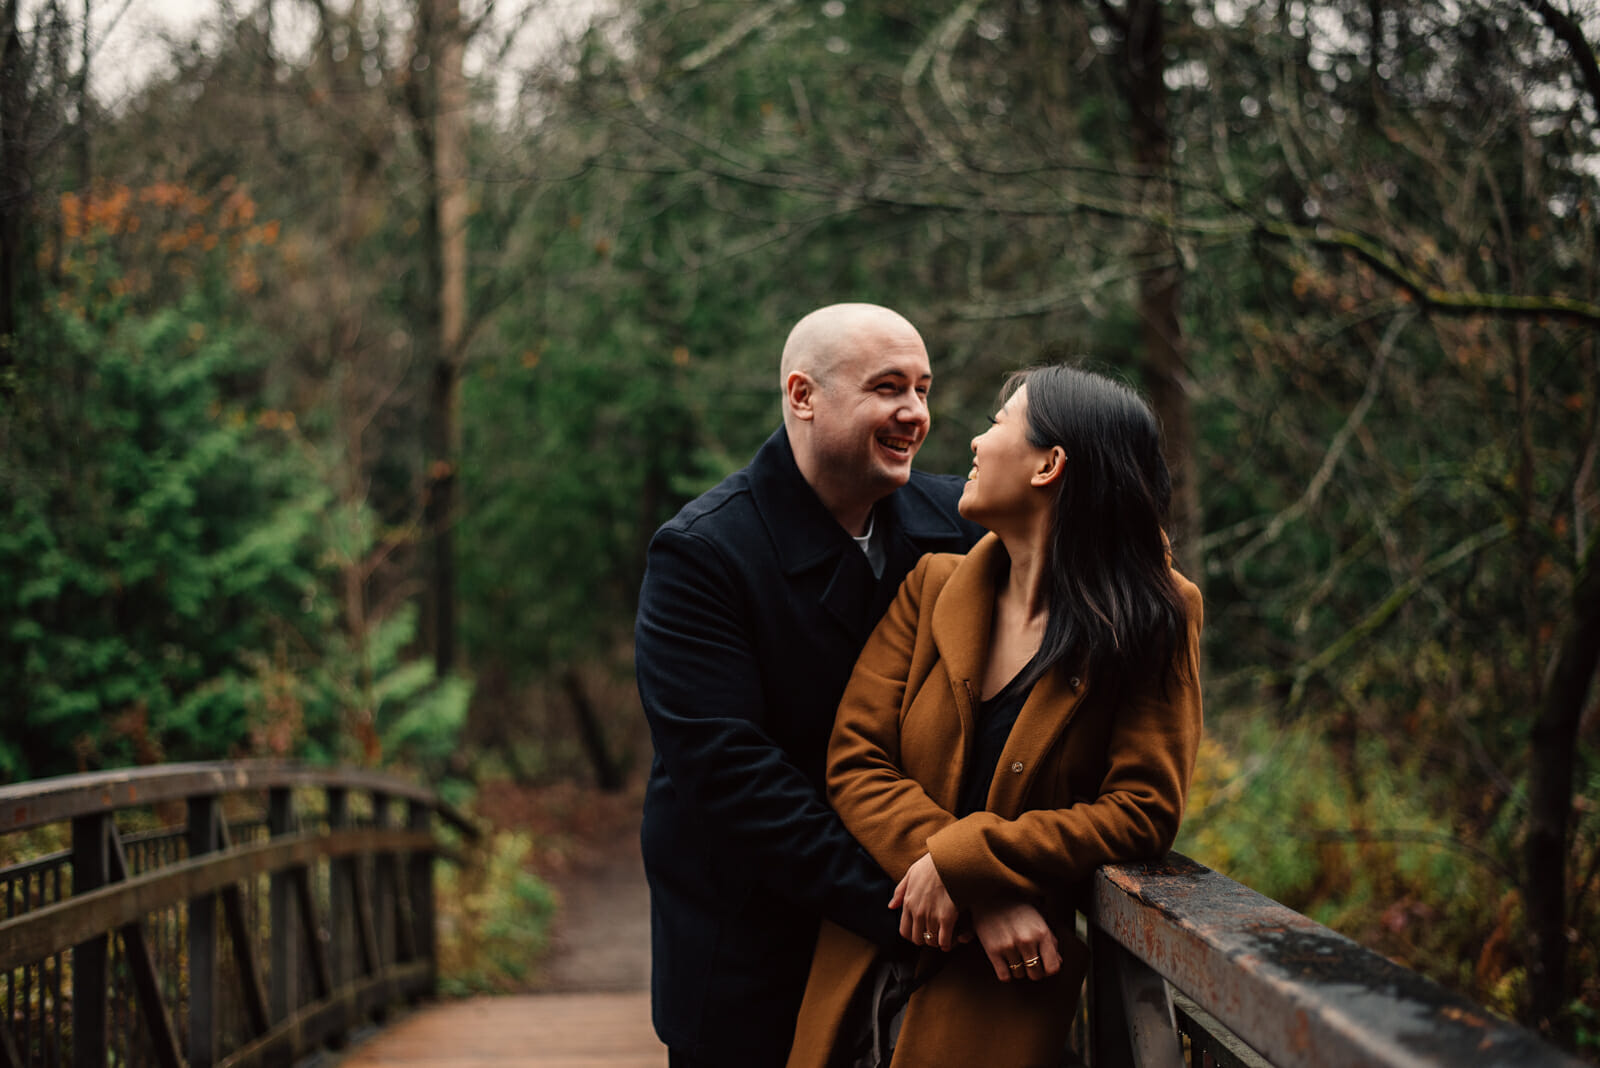 engaged couple laugh together while leaning against bridge railing